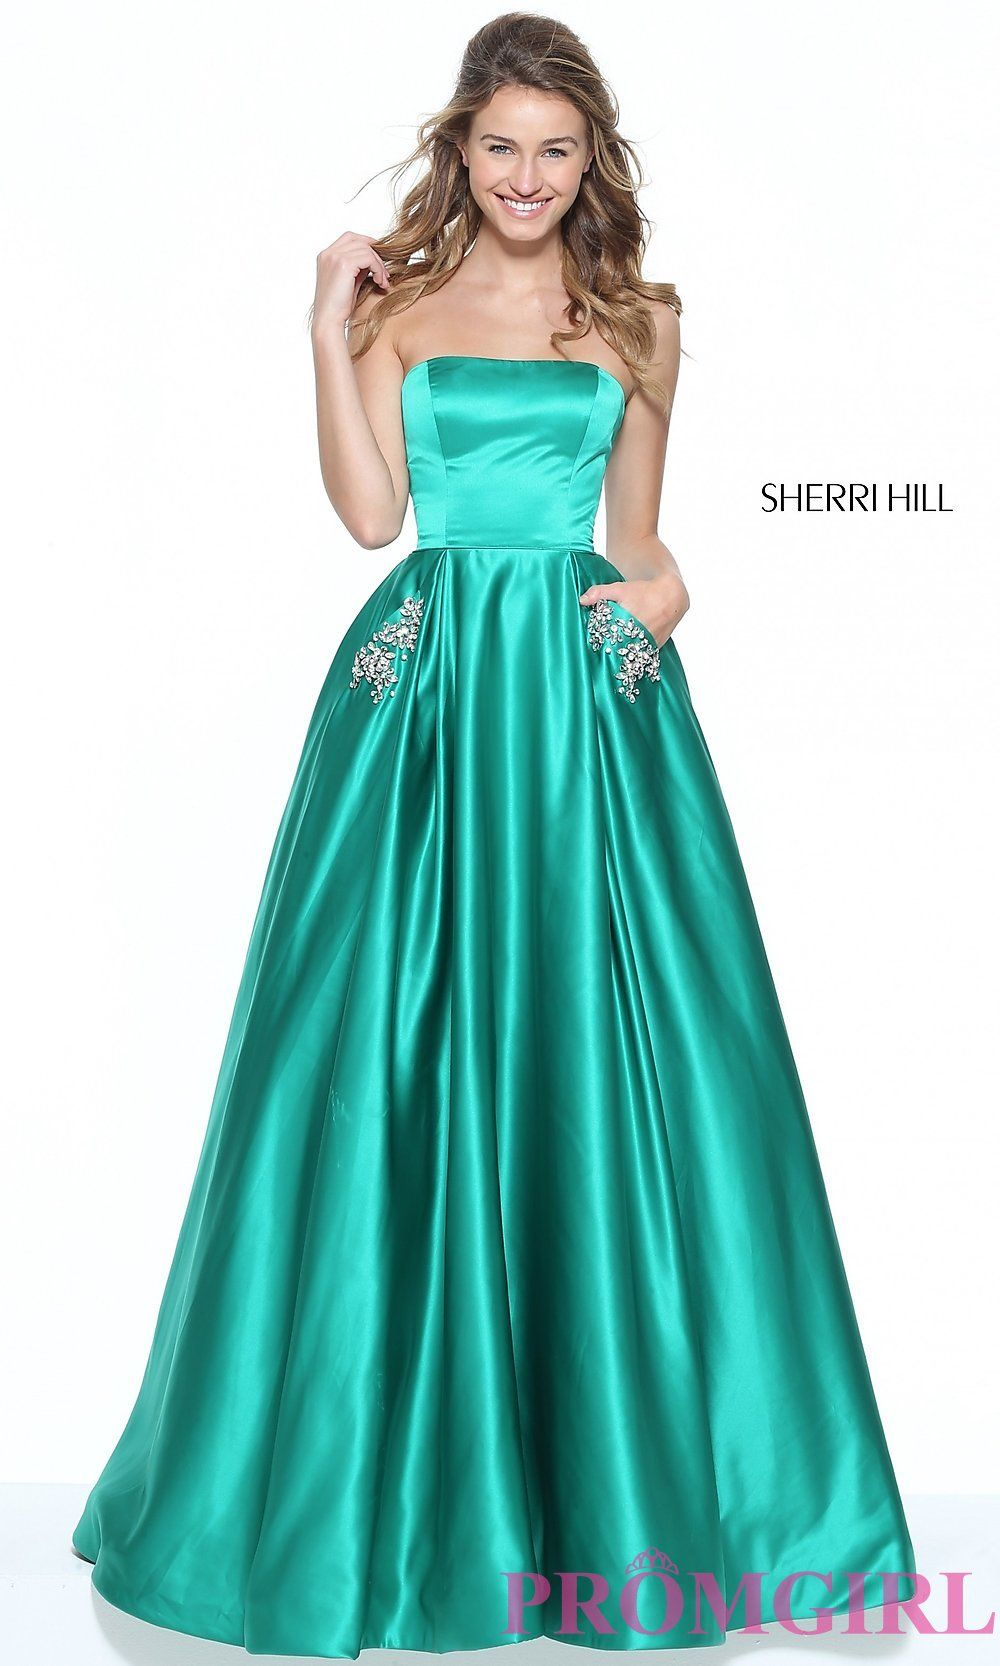 Sherri hill pretty dresses pinterest prom formal and gowns